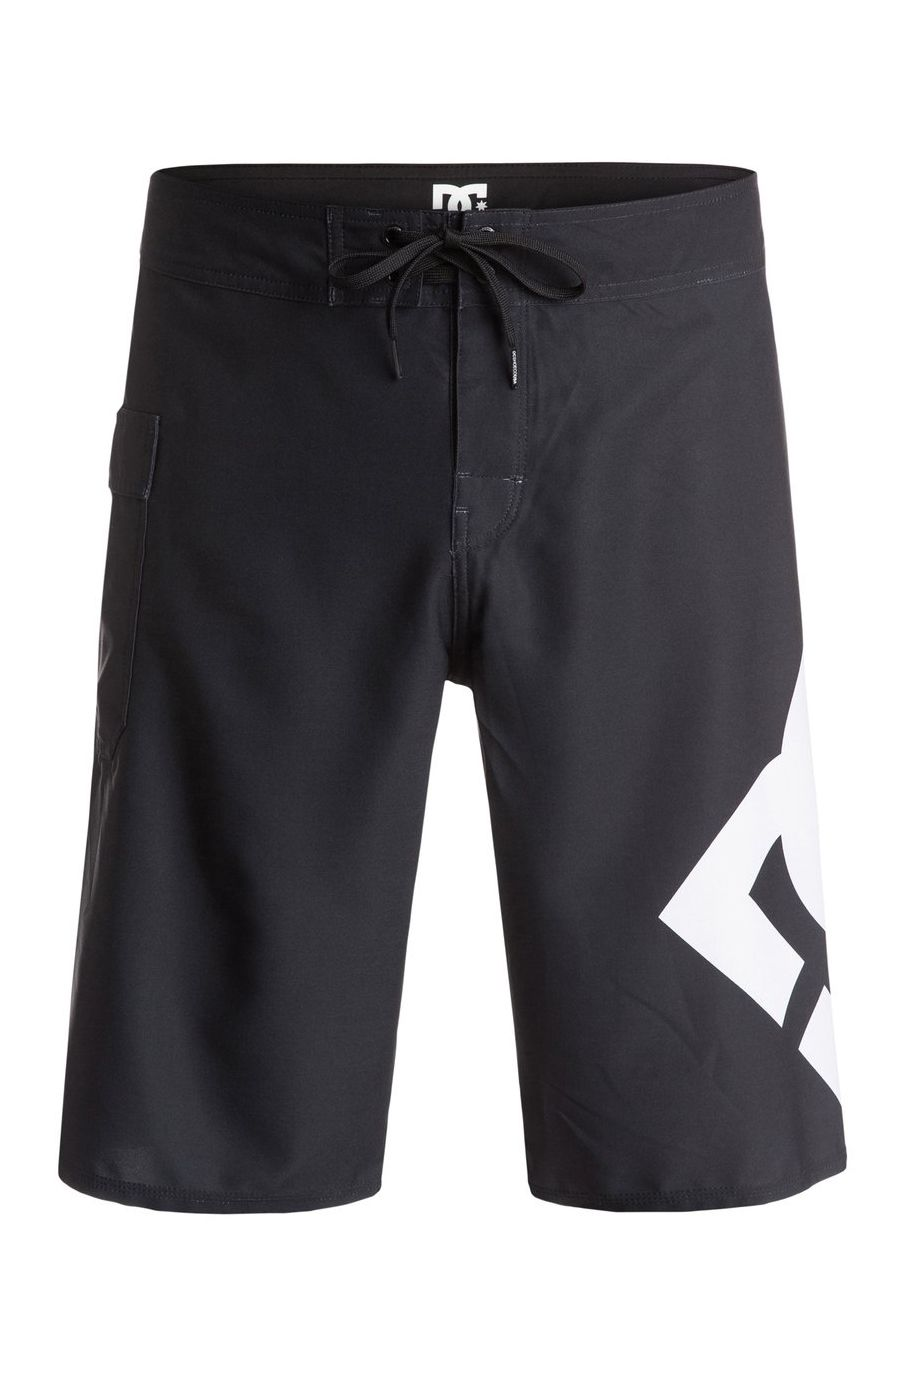 Boardshorts DC Shoes LANAI 22 M BDSH Black